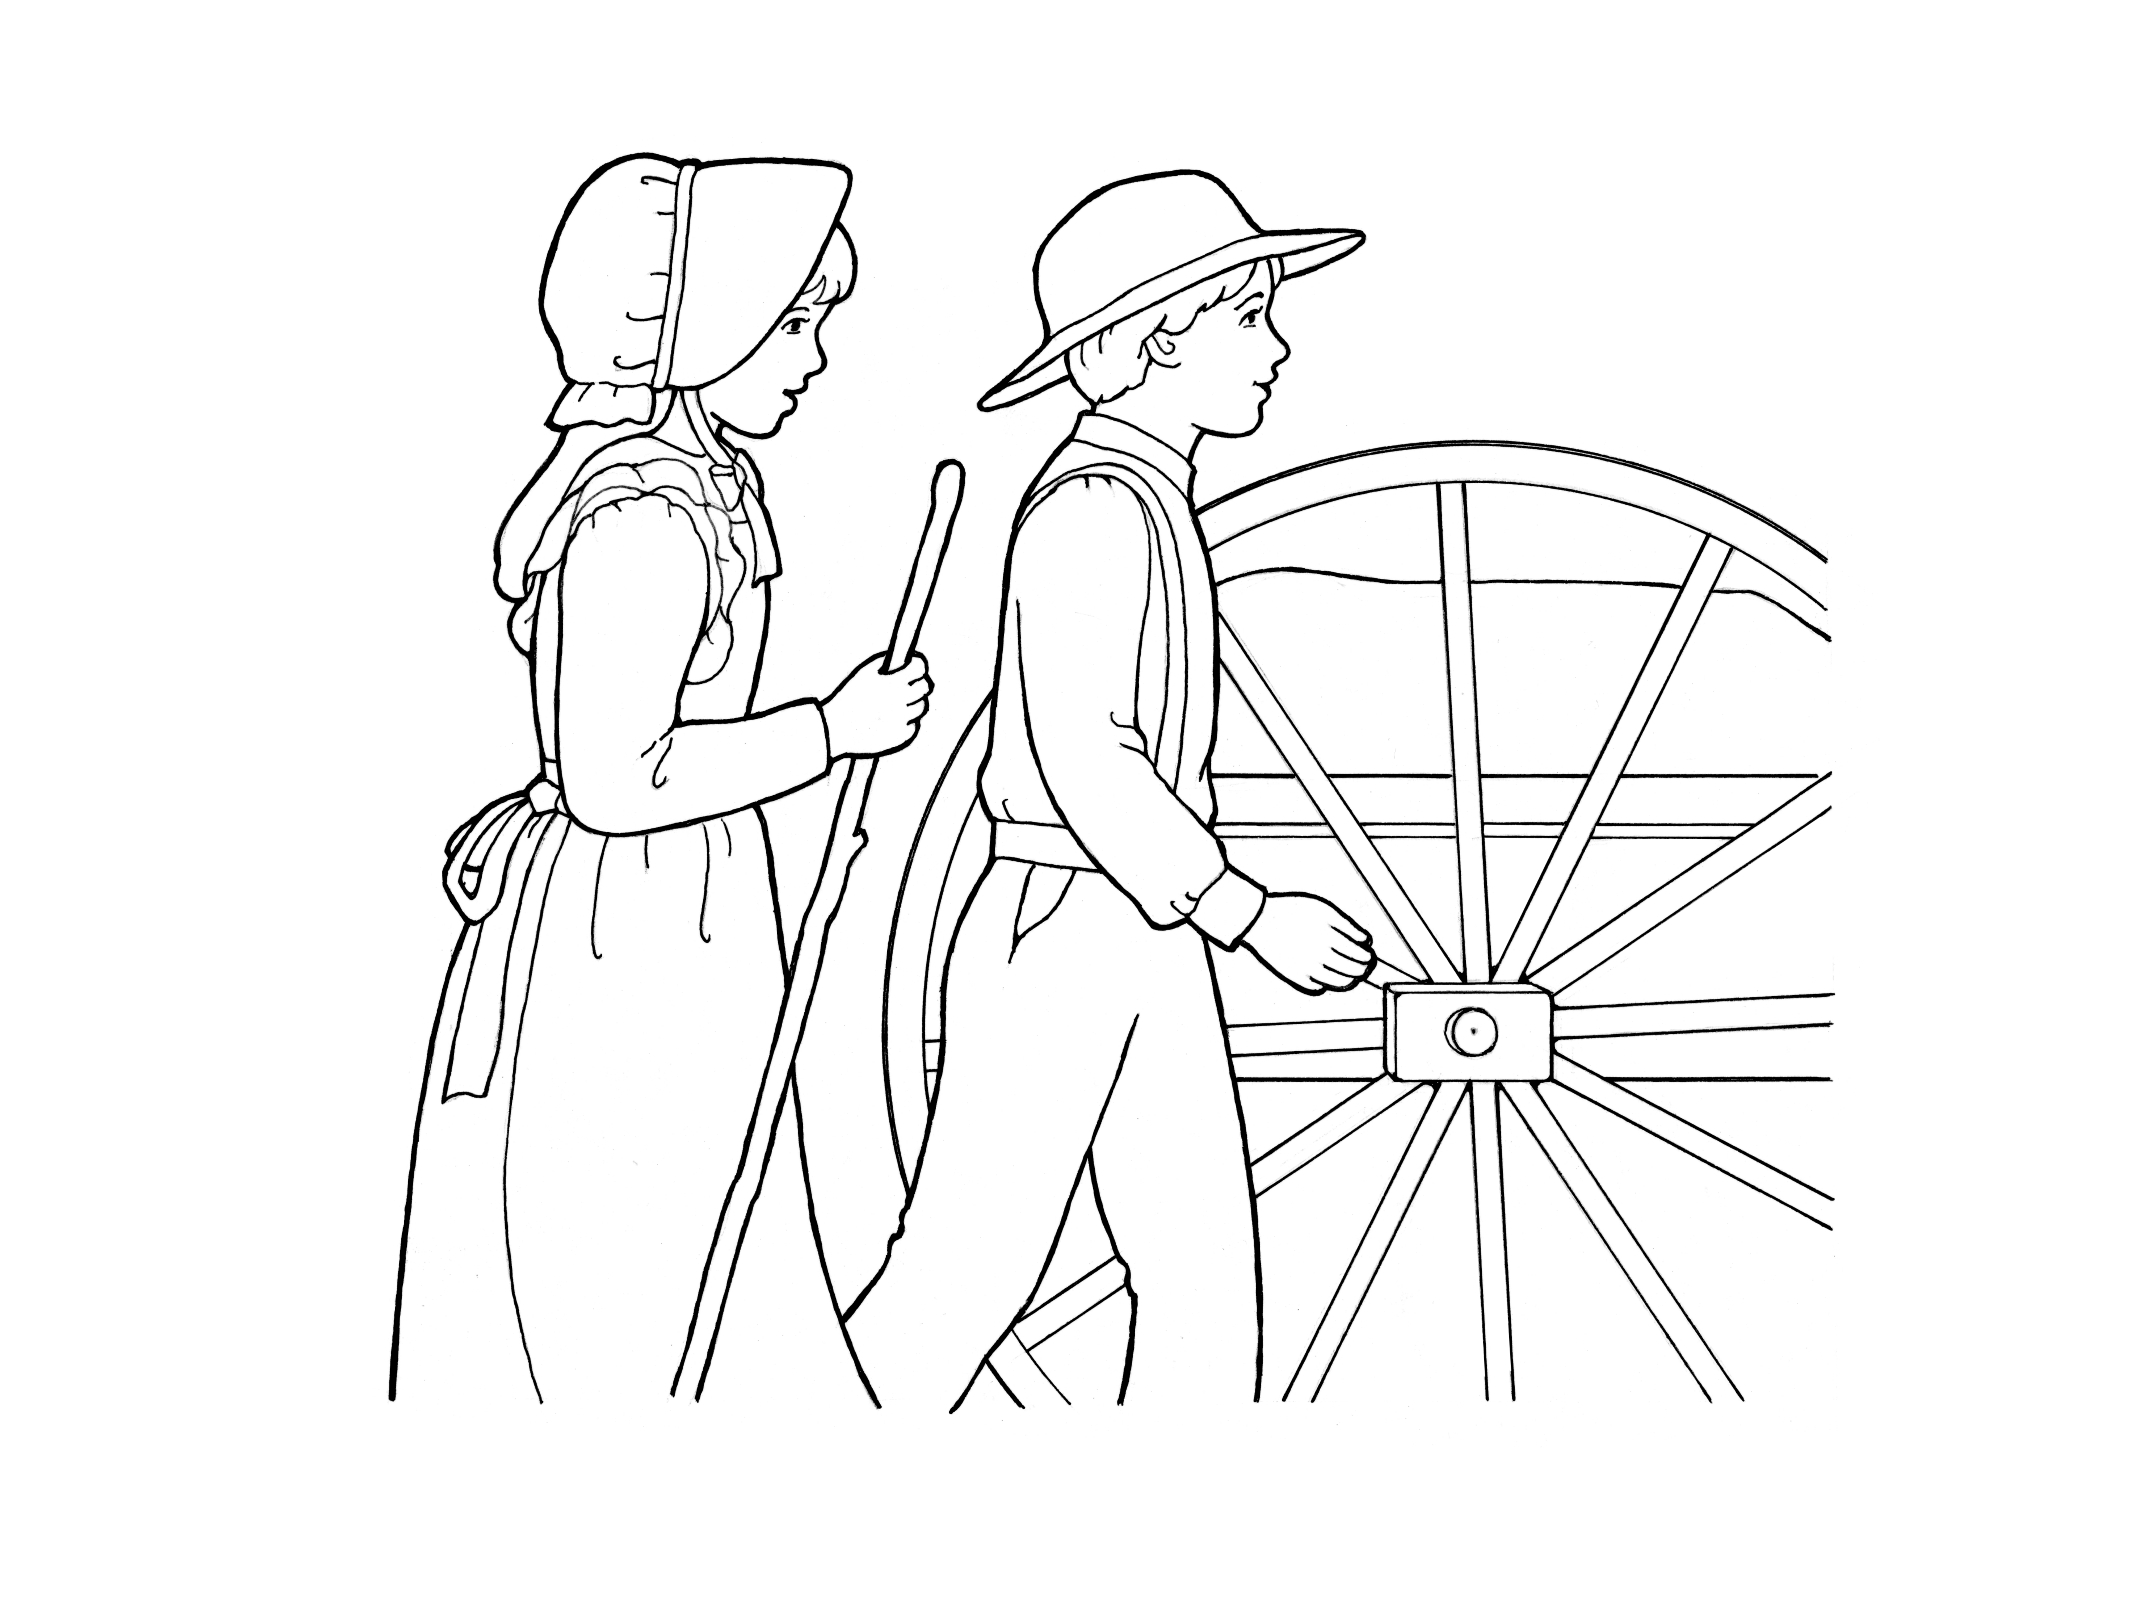 prioneer coloring pages - photo#15